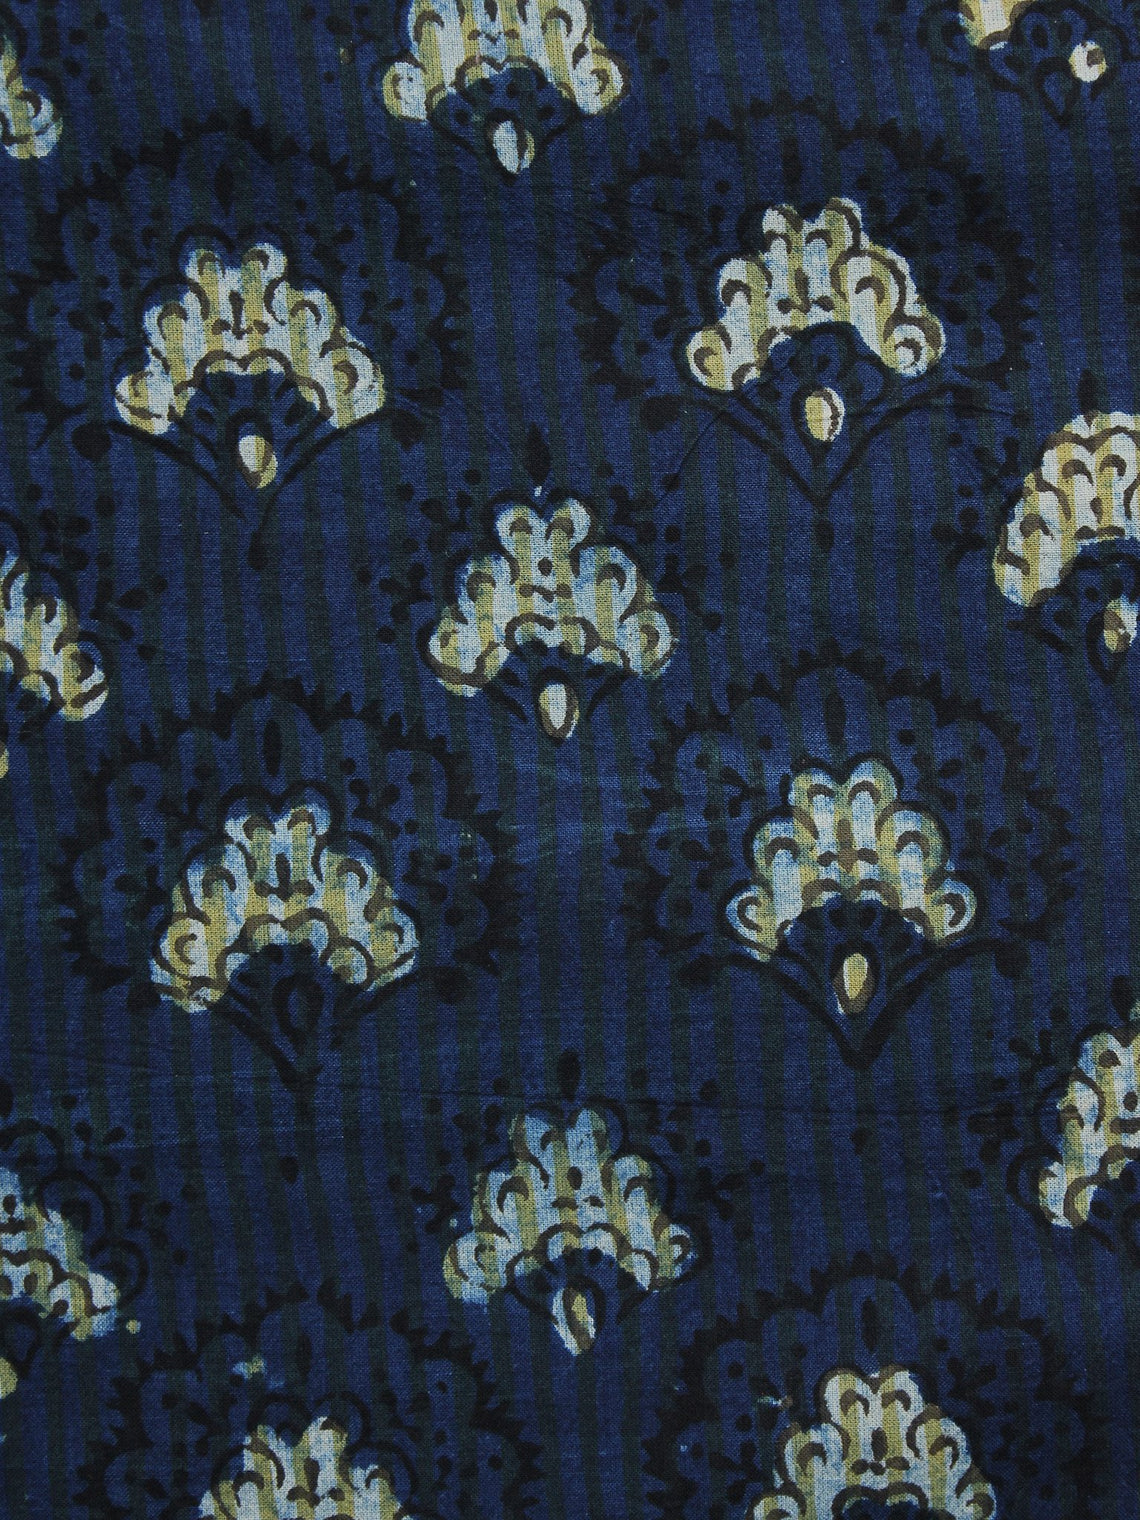 Indigo Ivory Black Hand Block Printed Cotton Fabric Per Meter - F001F999